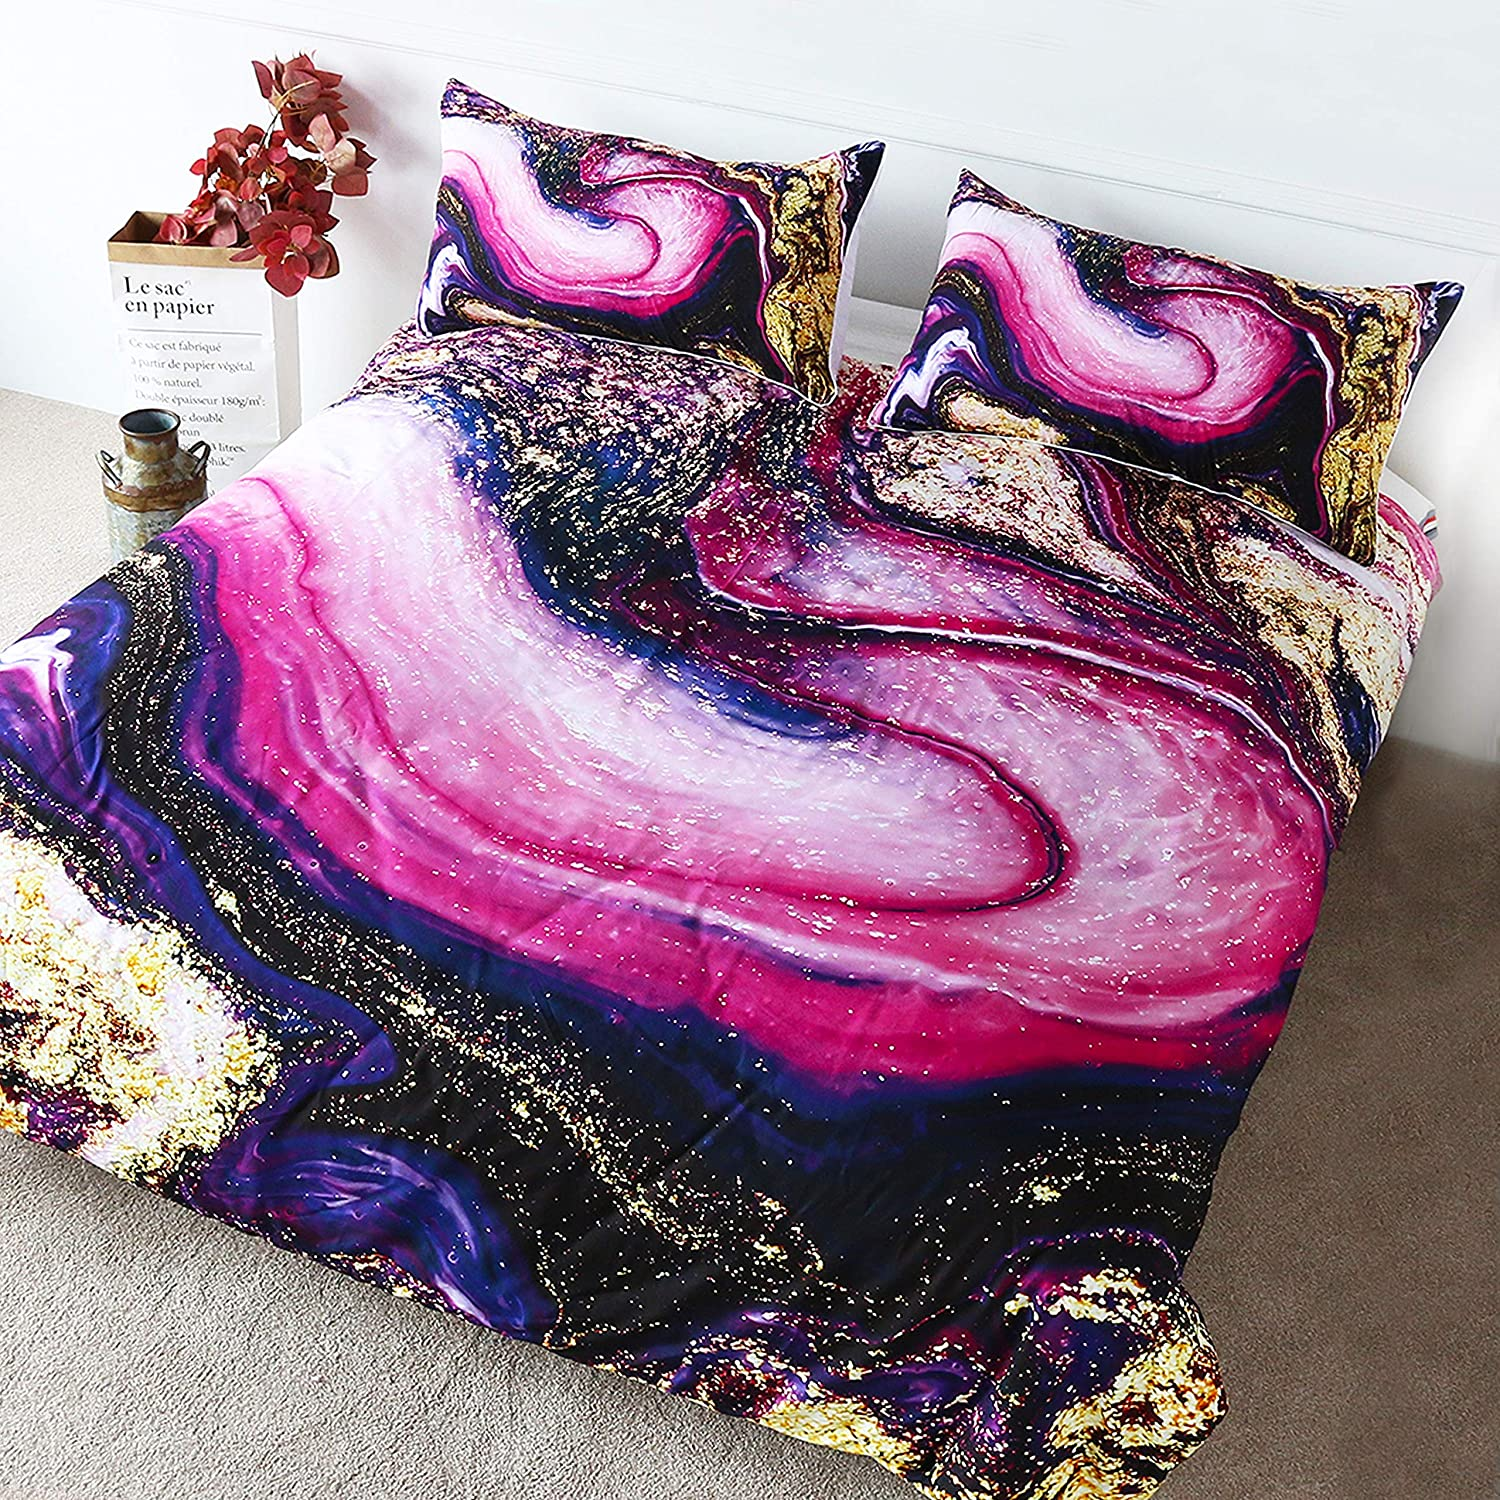 Blessliving Girly Gold Marble Bed Set Pastel Watercolor Fluid Painting Duvet Cover 3 Pieces Bright Purple Pink Bedding Twin Size